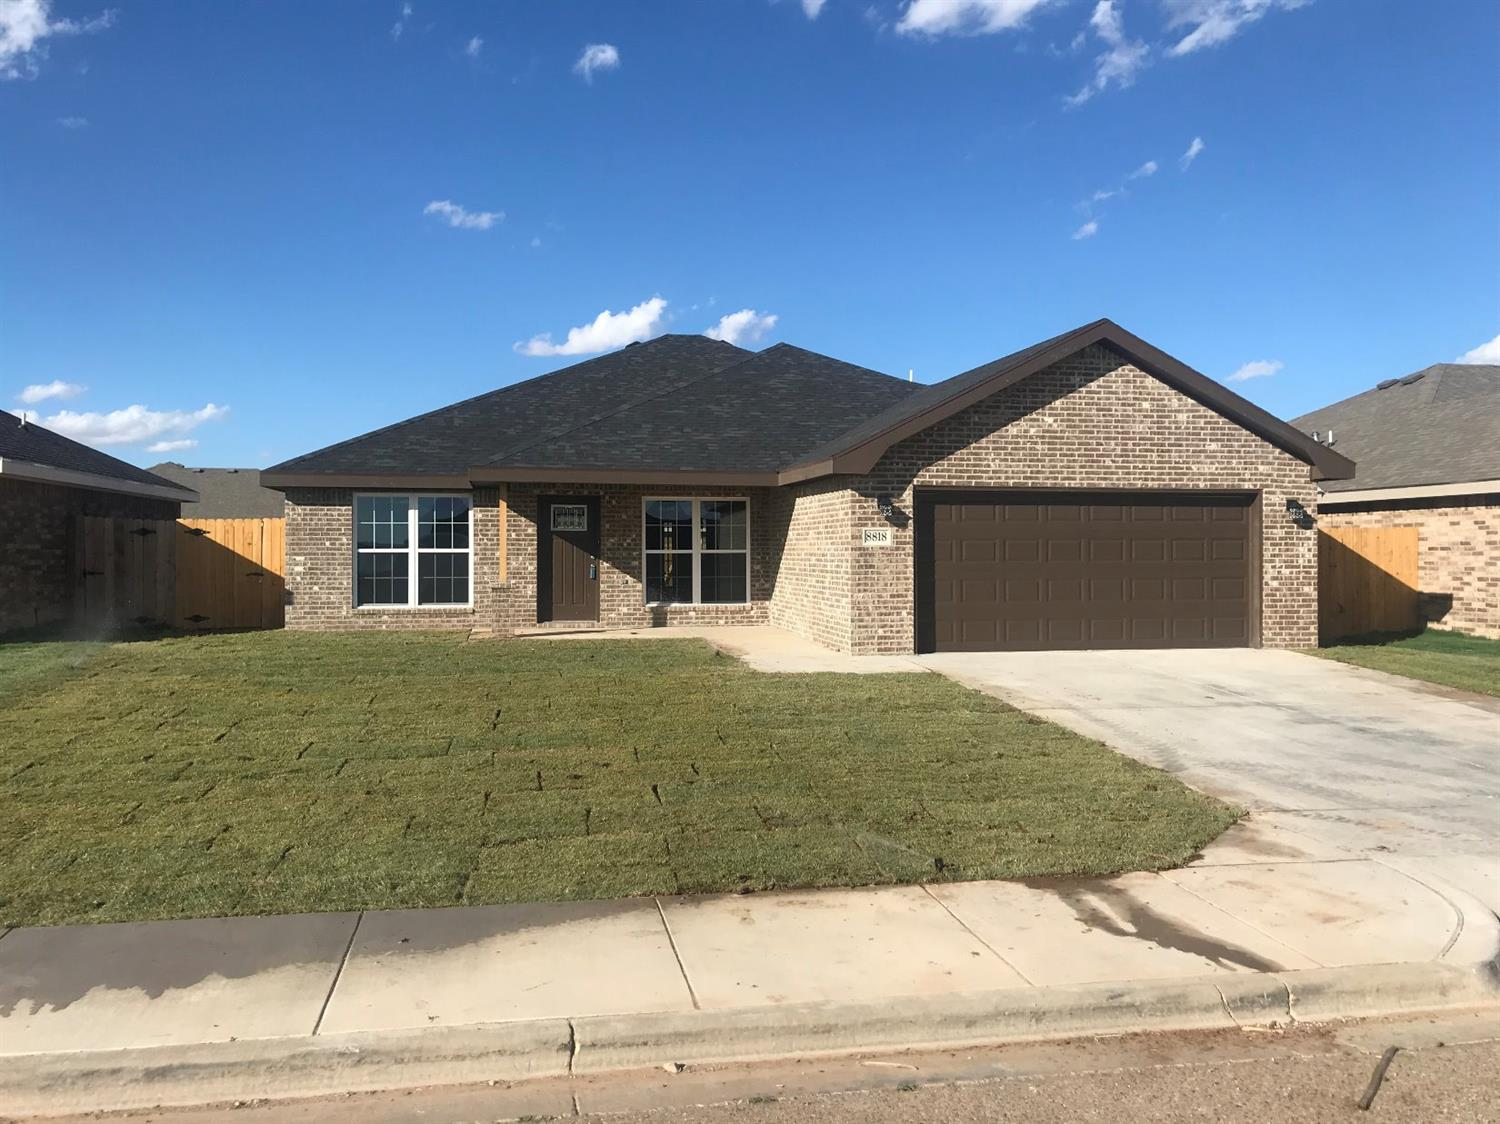 8817 15th Street, Lubbock in Lubbock County, TX 79416 Home for Sale